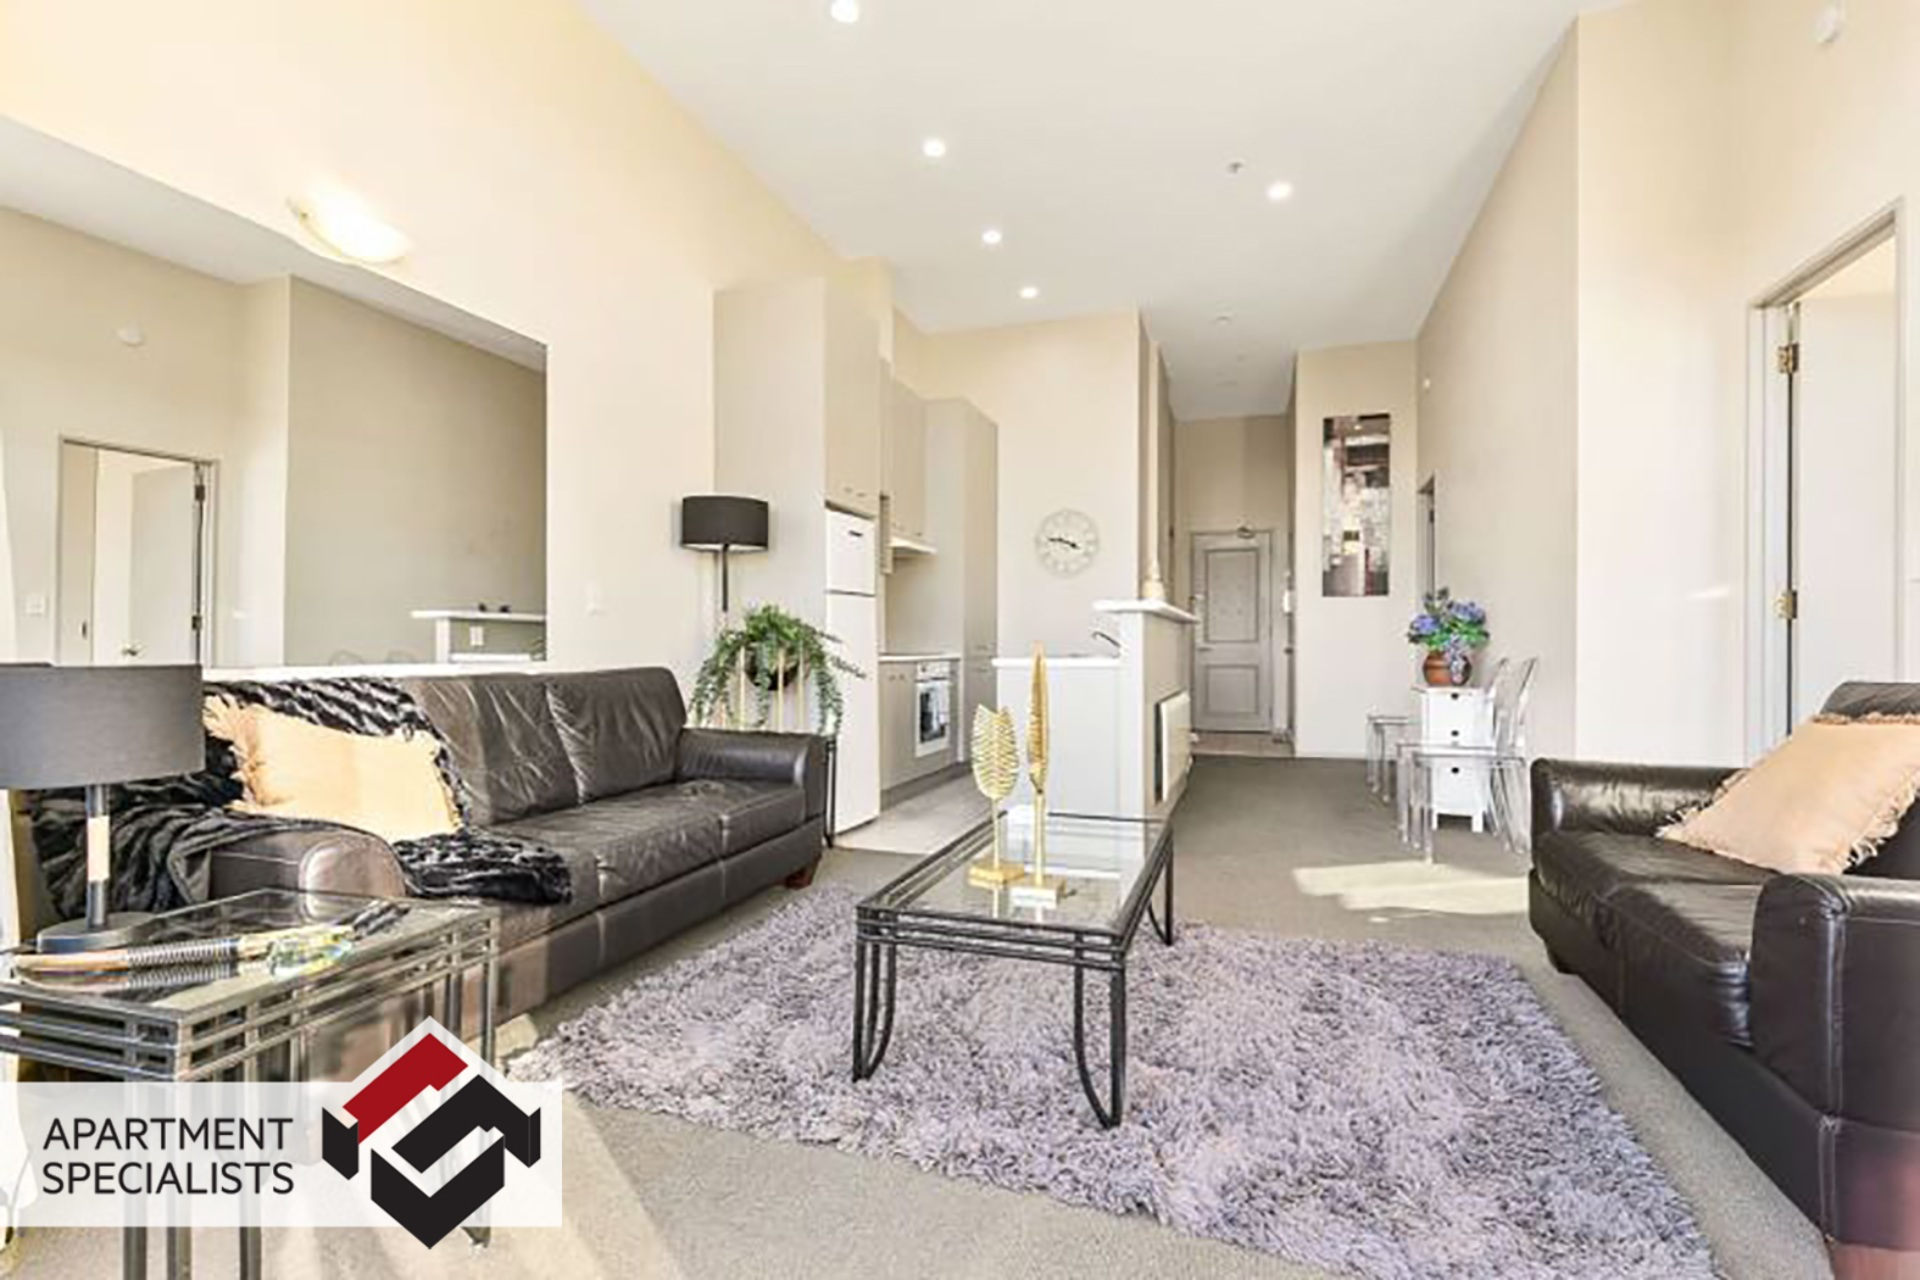 5 | 50 Eden Crescent, City Centre | Apartment Specialists